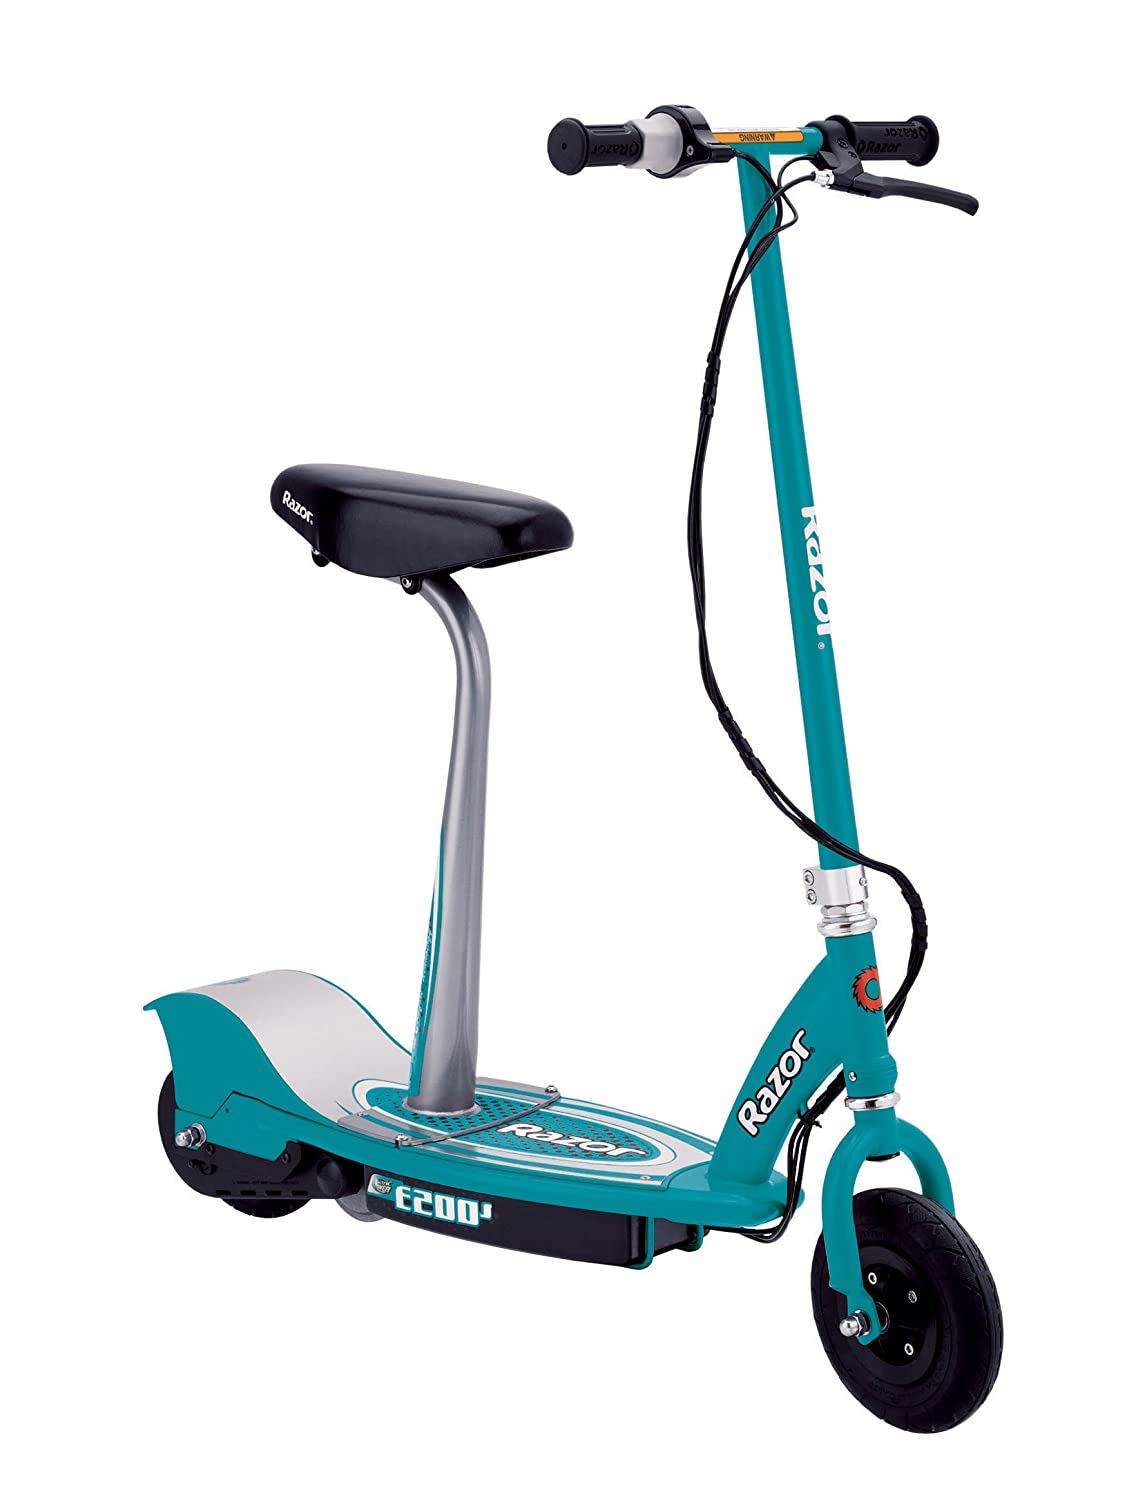 Top 10 Best Electric Scooters For Kids Reviews 2016 2017